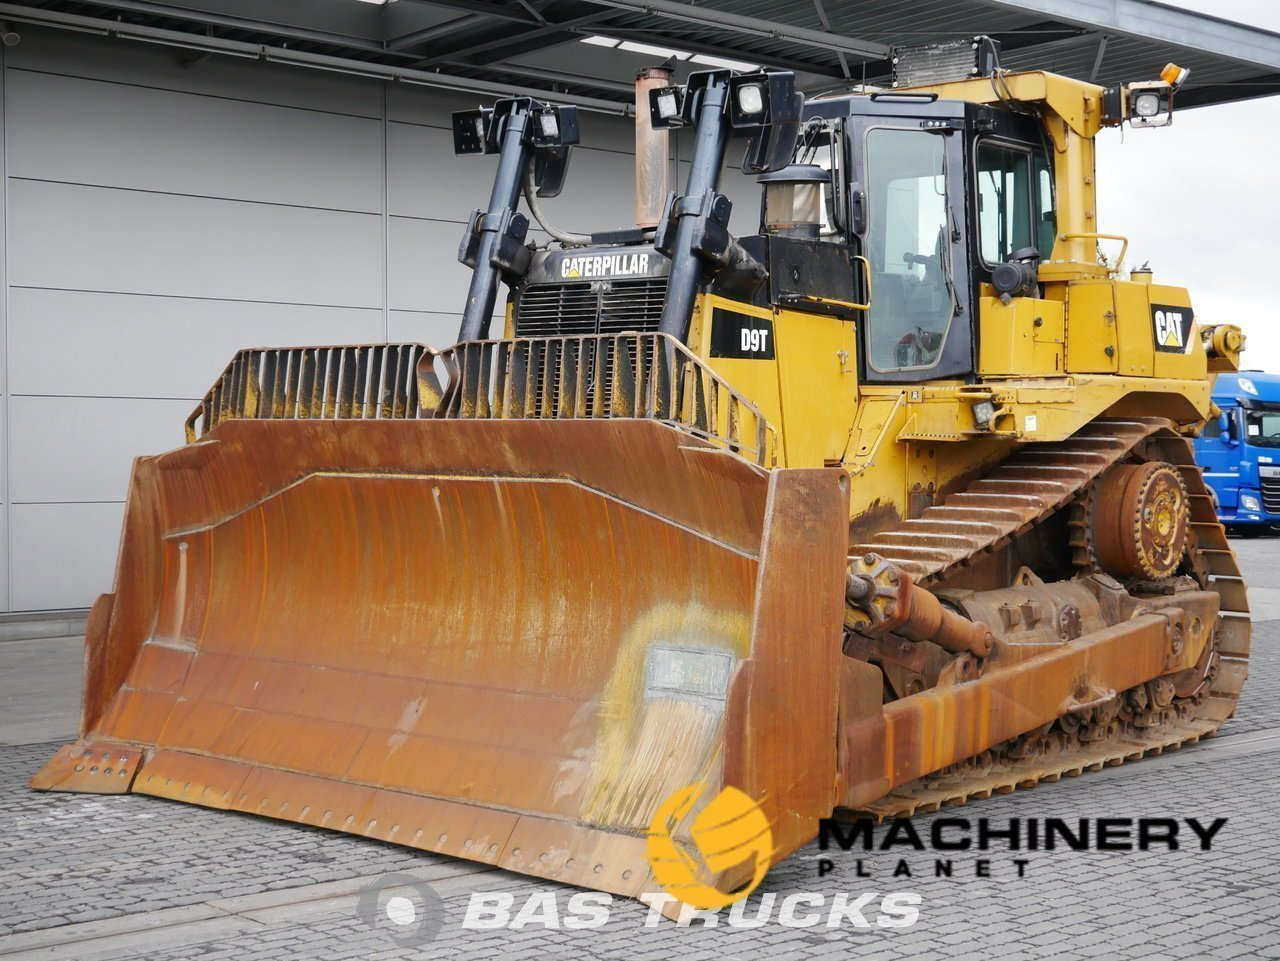 Used-Construction-equipment-Caterpillar-D9T-Track-2010_141148_1-1554199352106_5ca3333819c73-1.jpg